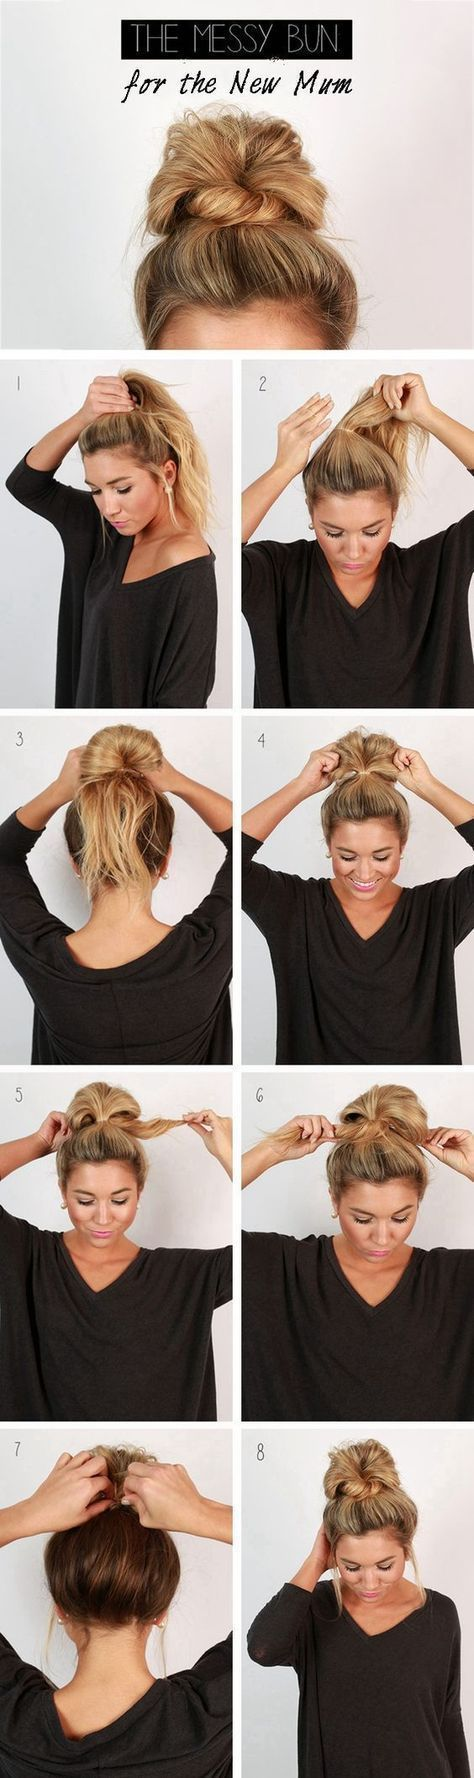 Haren With Images Diy Hairstyles Easy Easy Updo Hairstyles Long Hair Styles